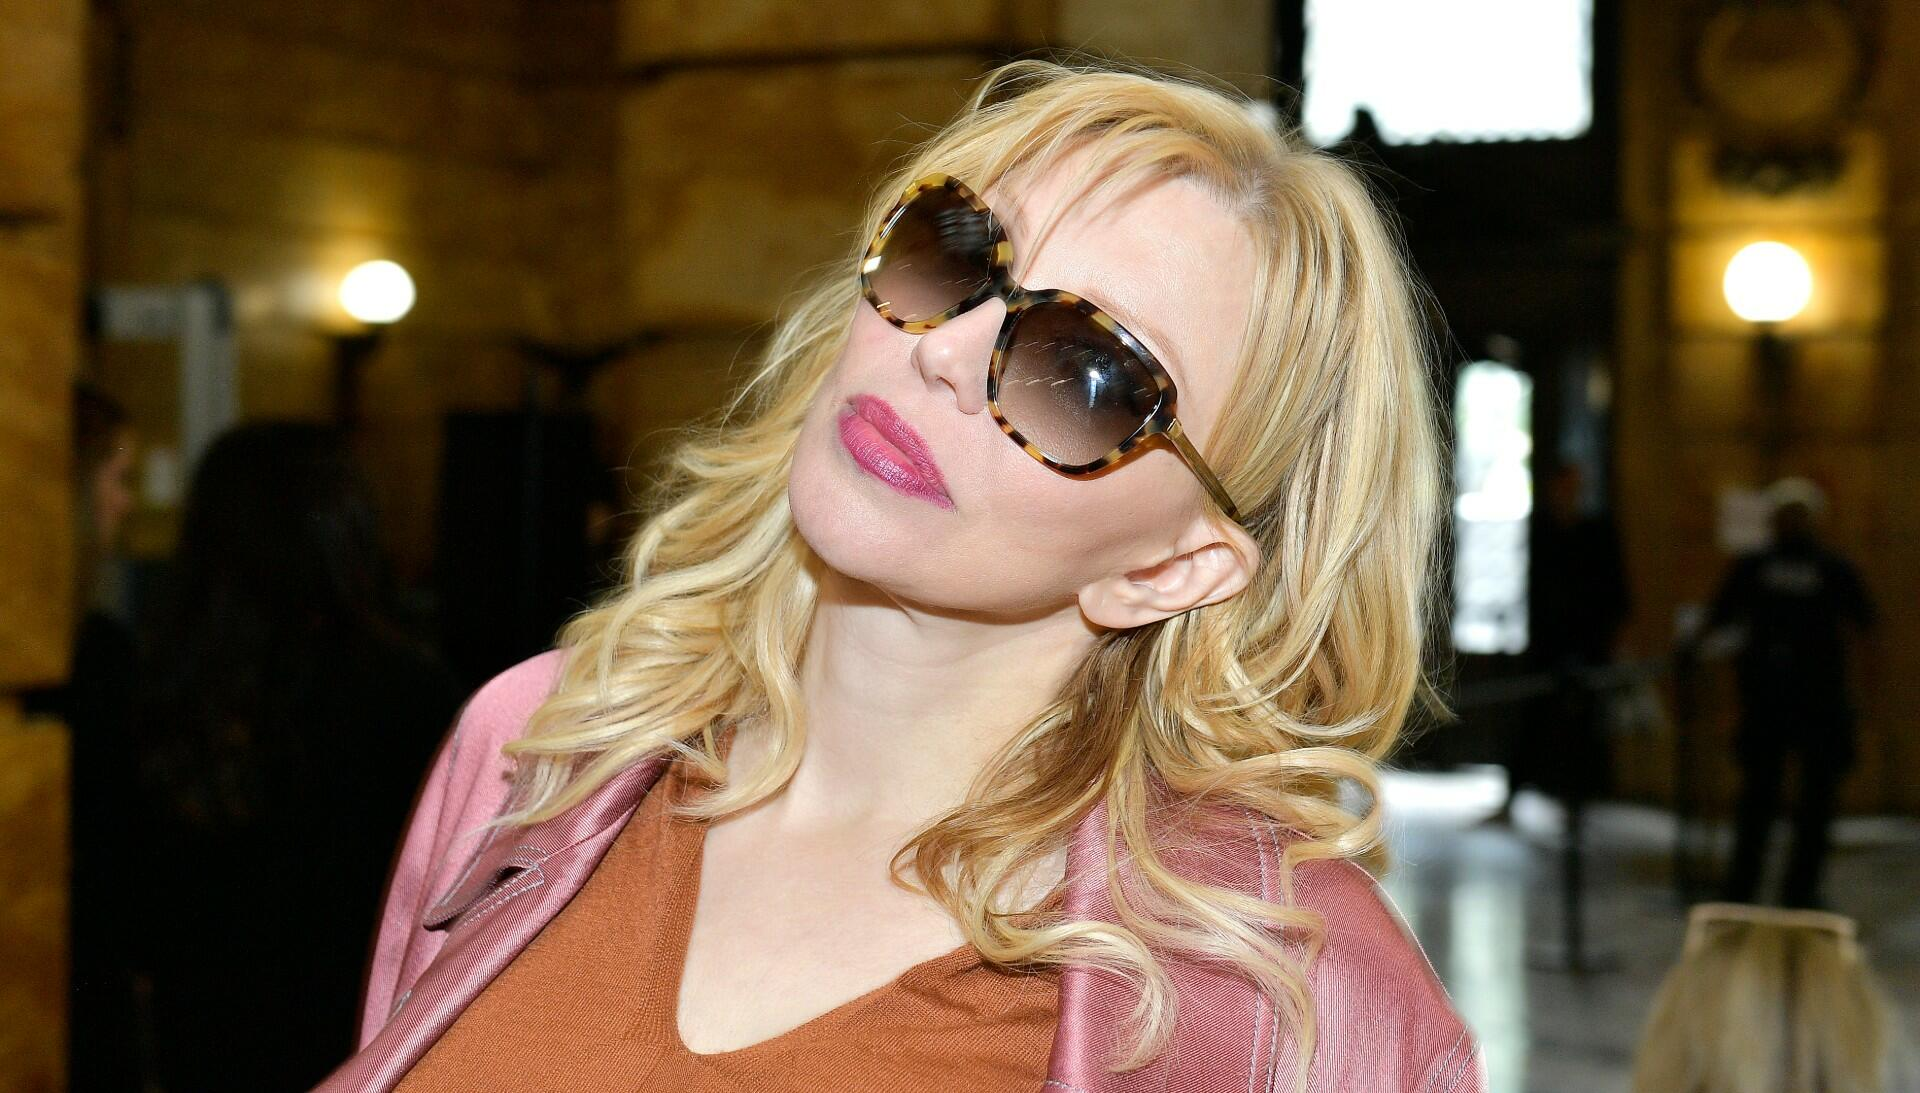 Courtney Love Claims To Be 18 Months Sober